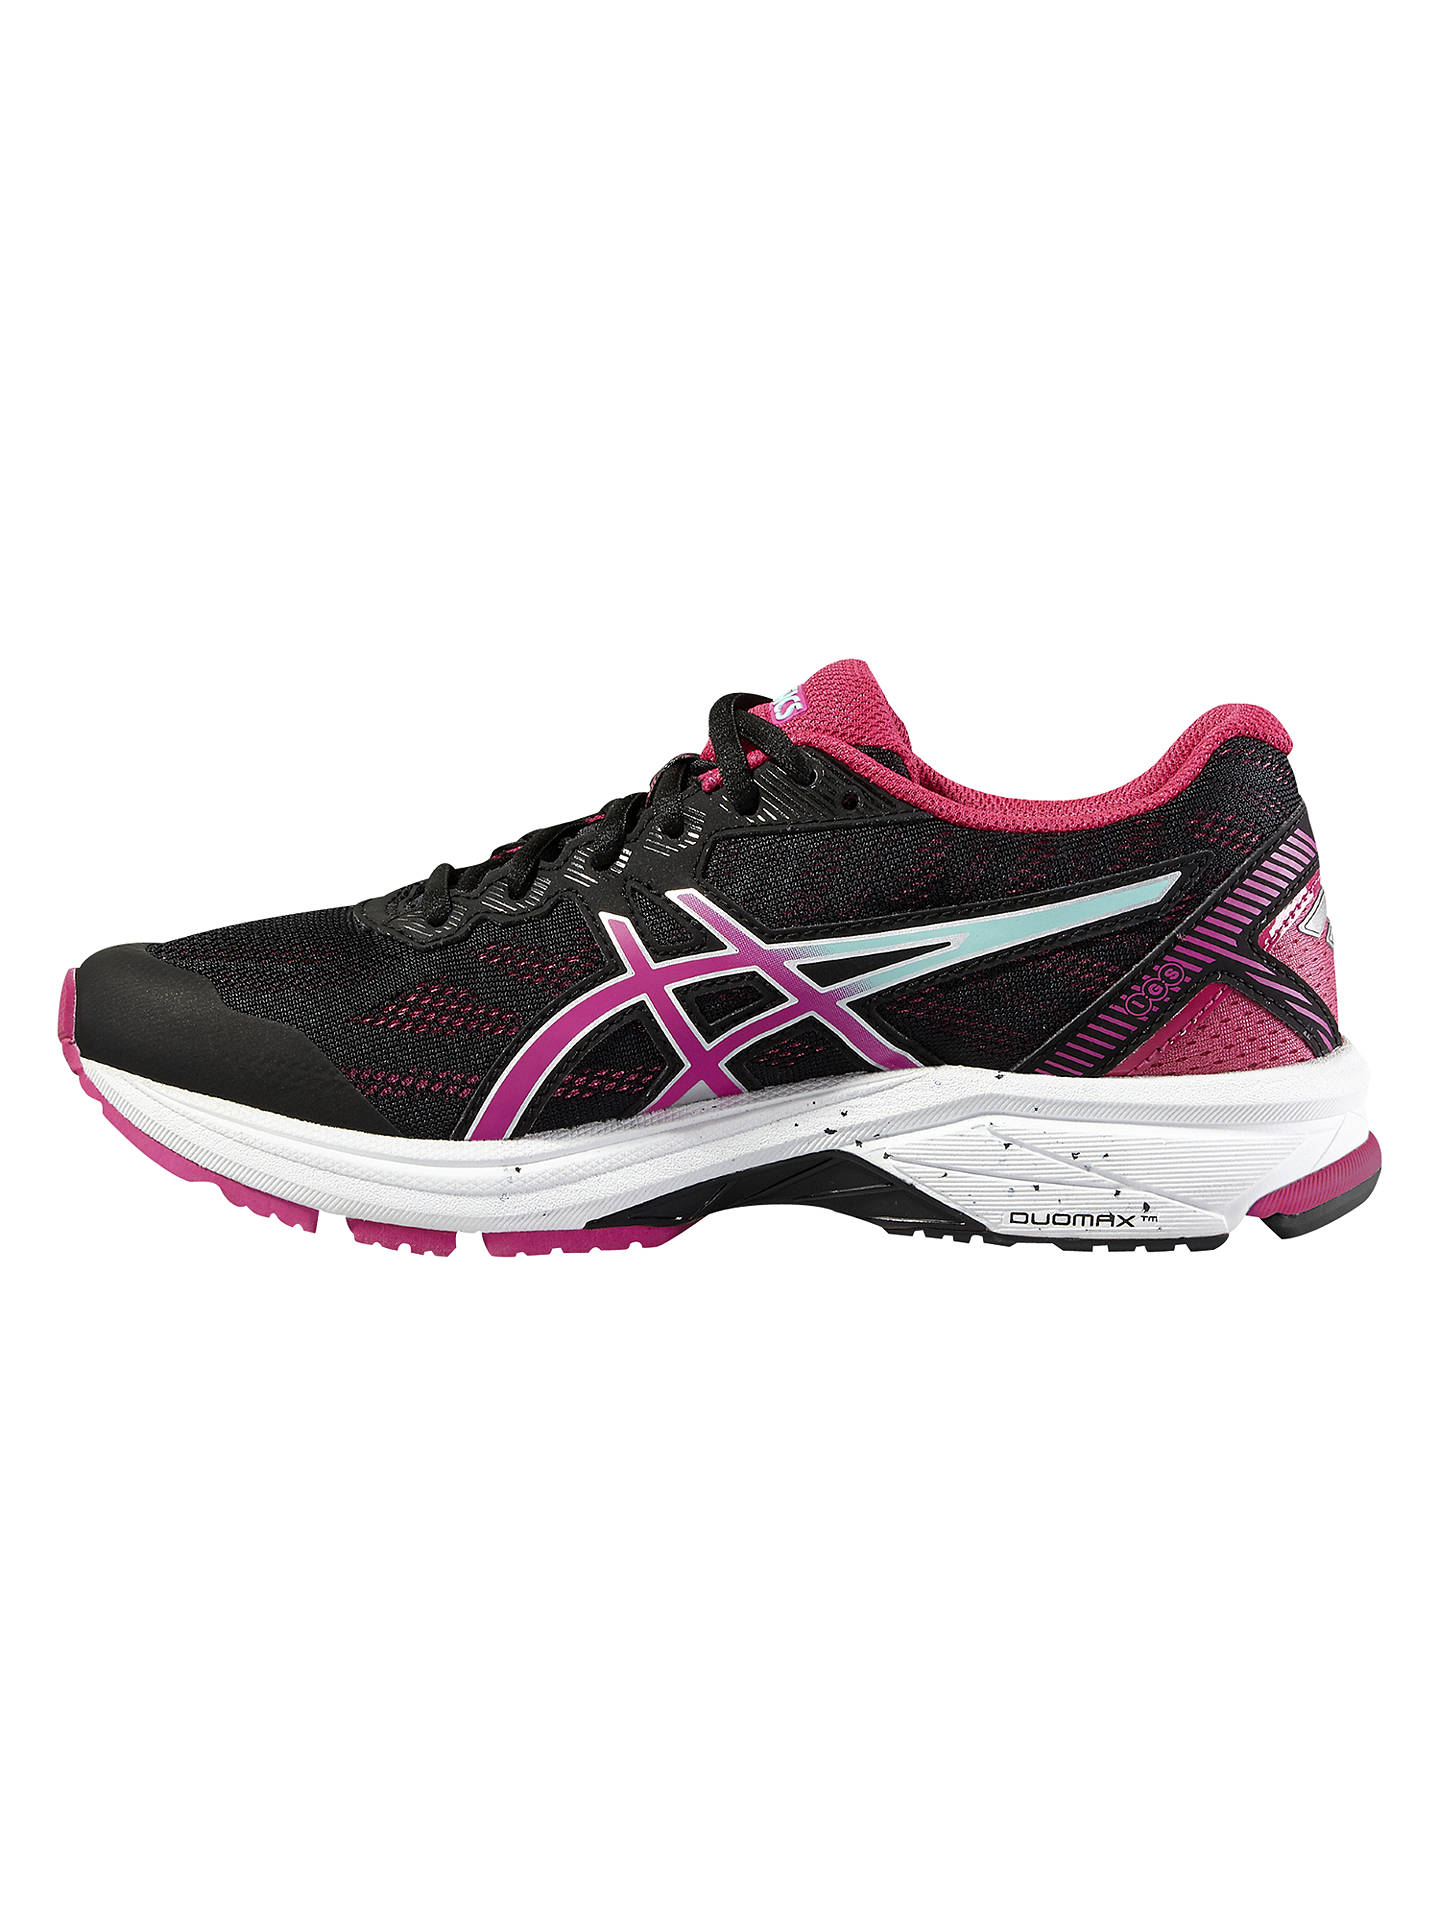 Asics GT 1000 5 Womens Pink Support Running Road Sports Shoes Trainers Pumps